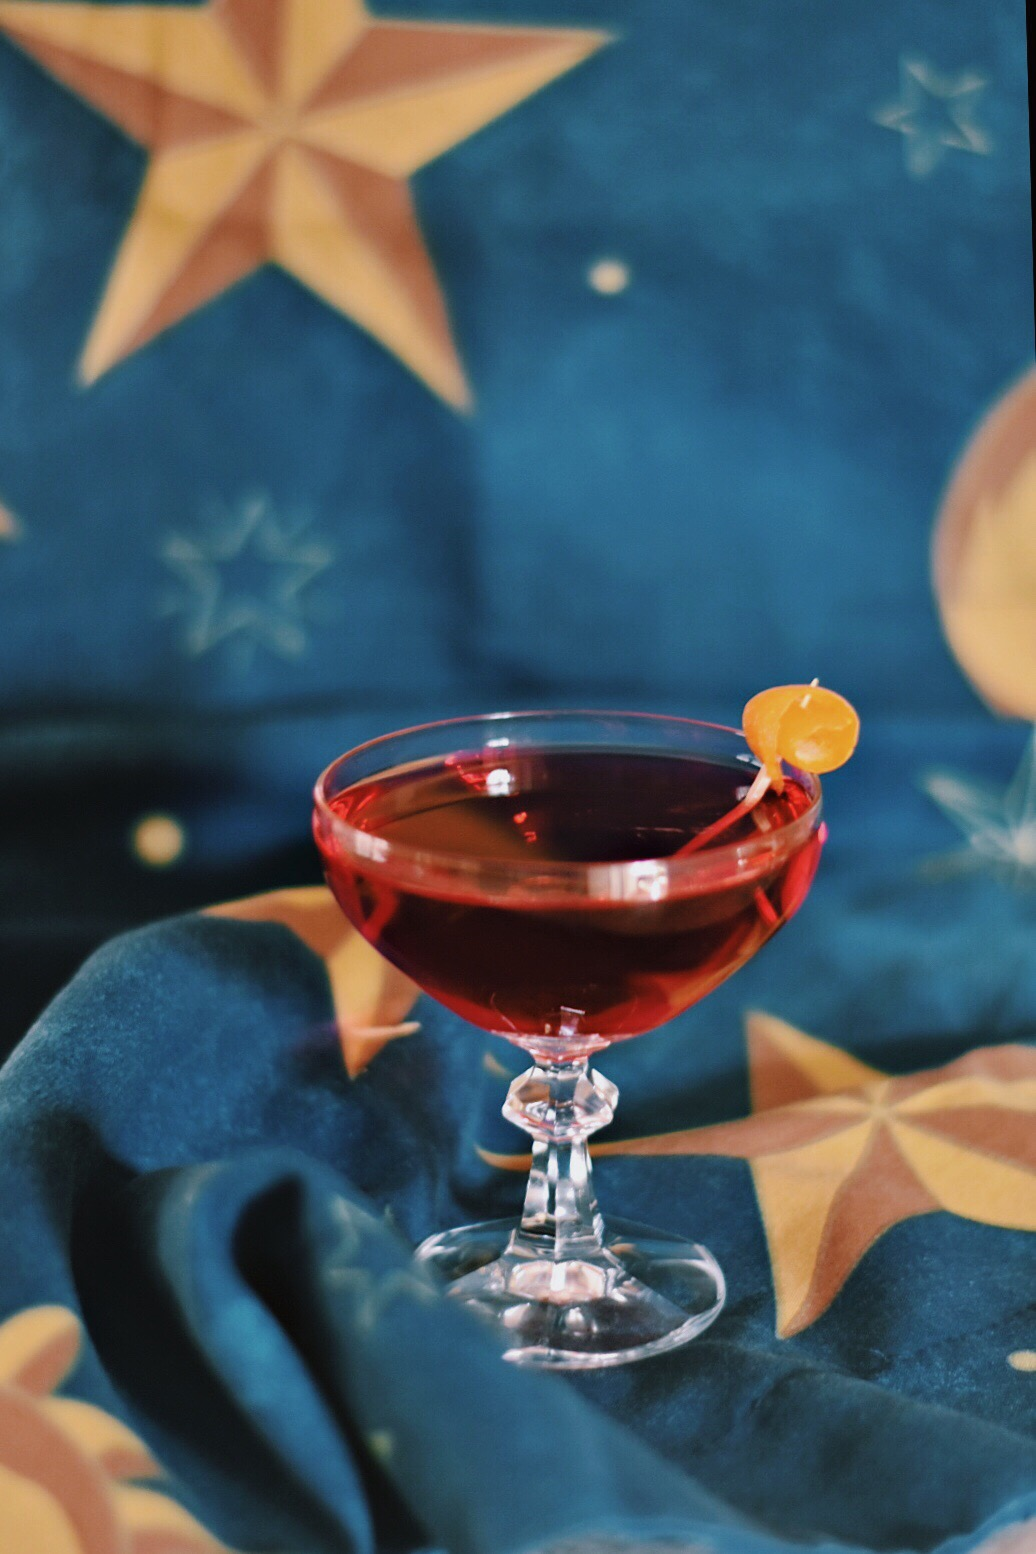 The Negroni Sbagliato - the tastiest mistake that became a cocktail